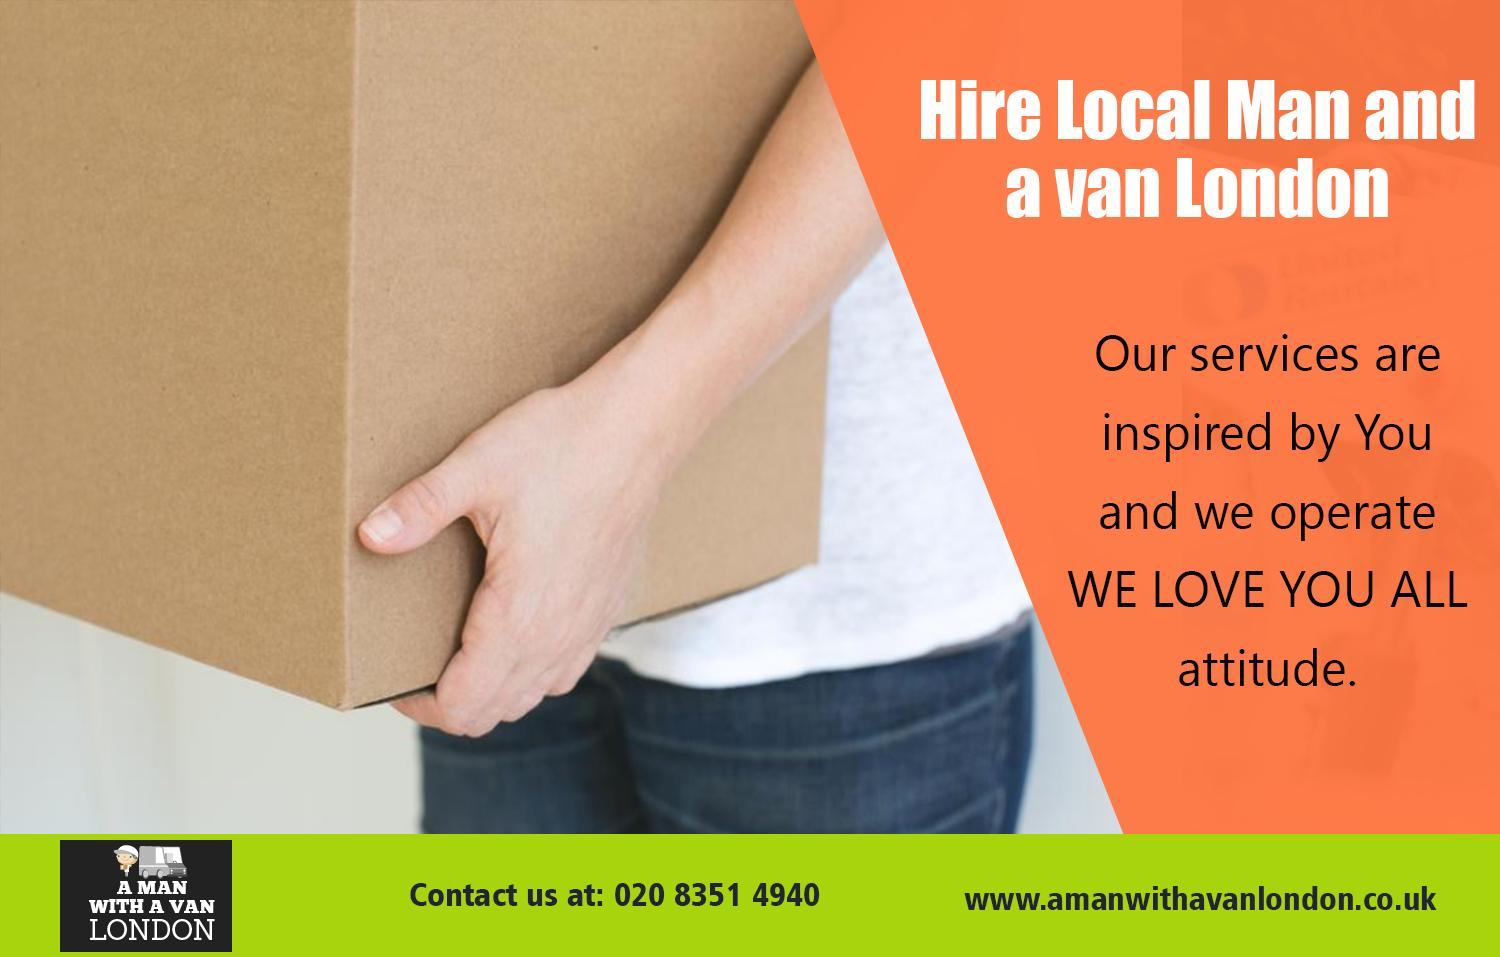 Hire Local Man and van